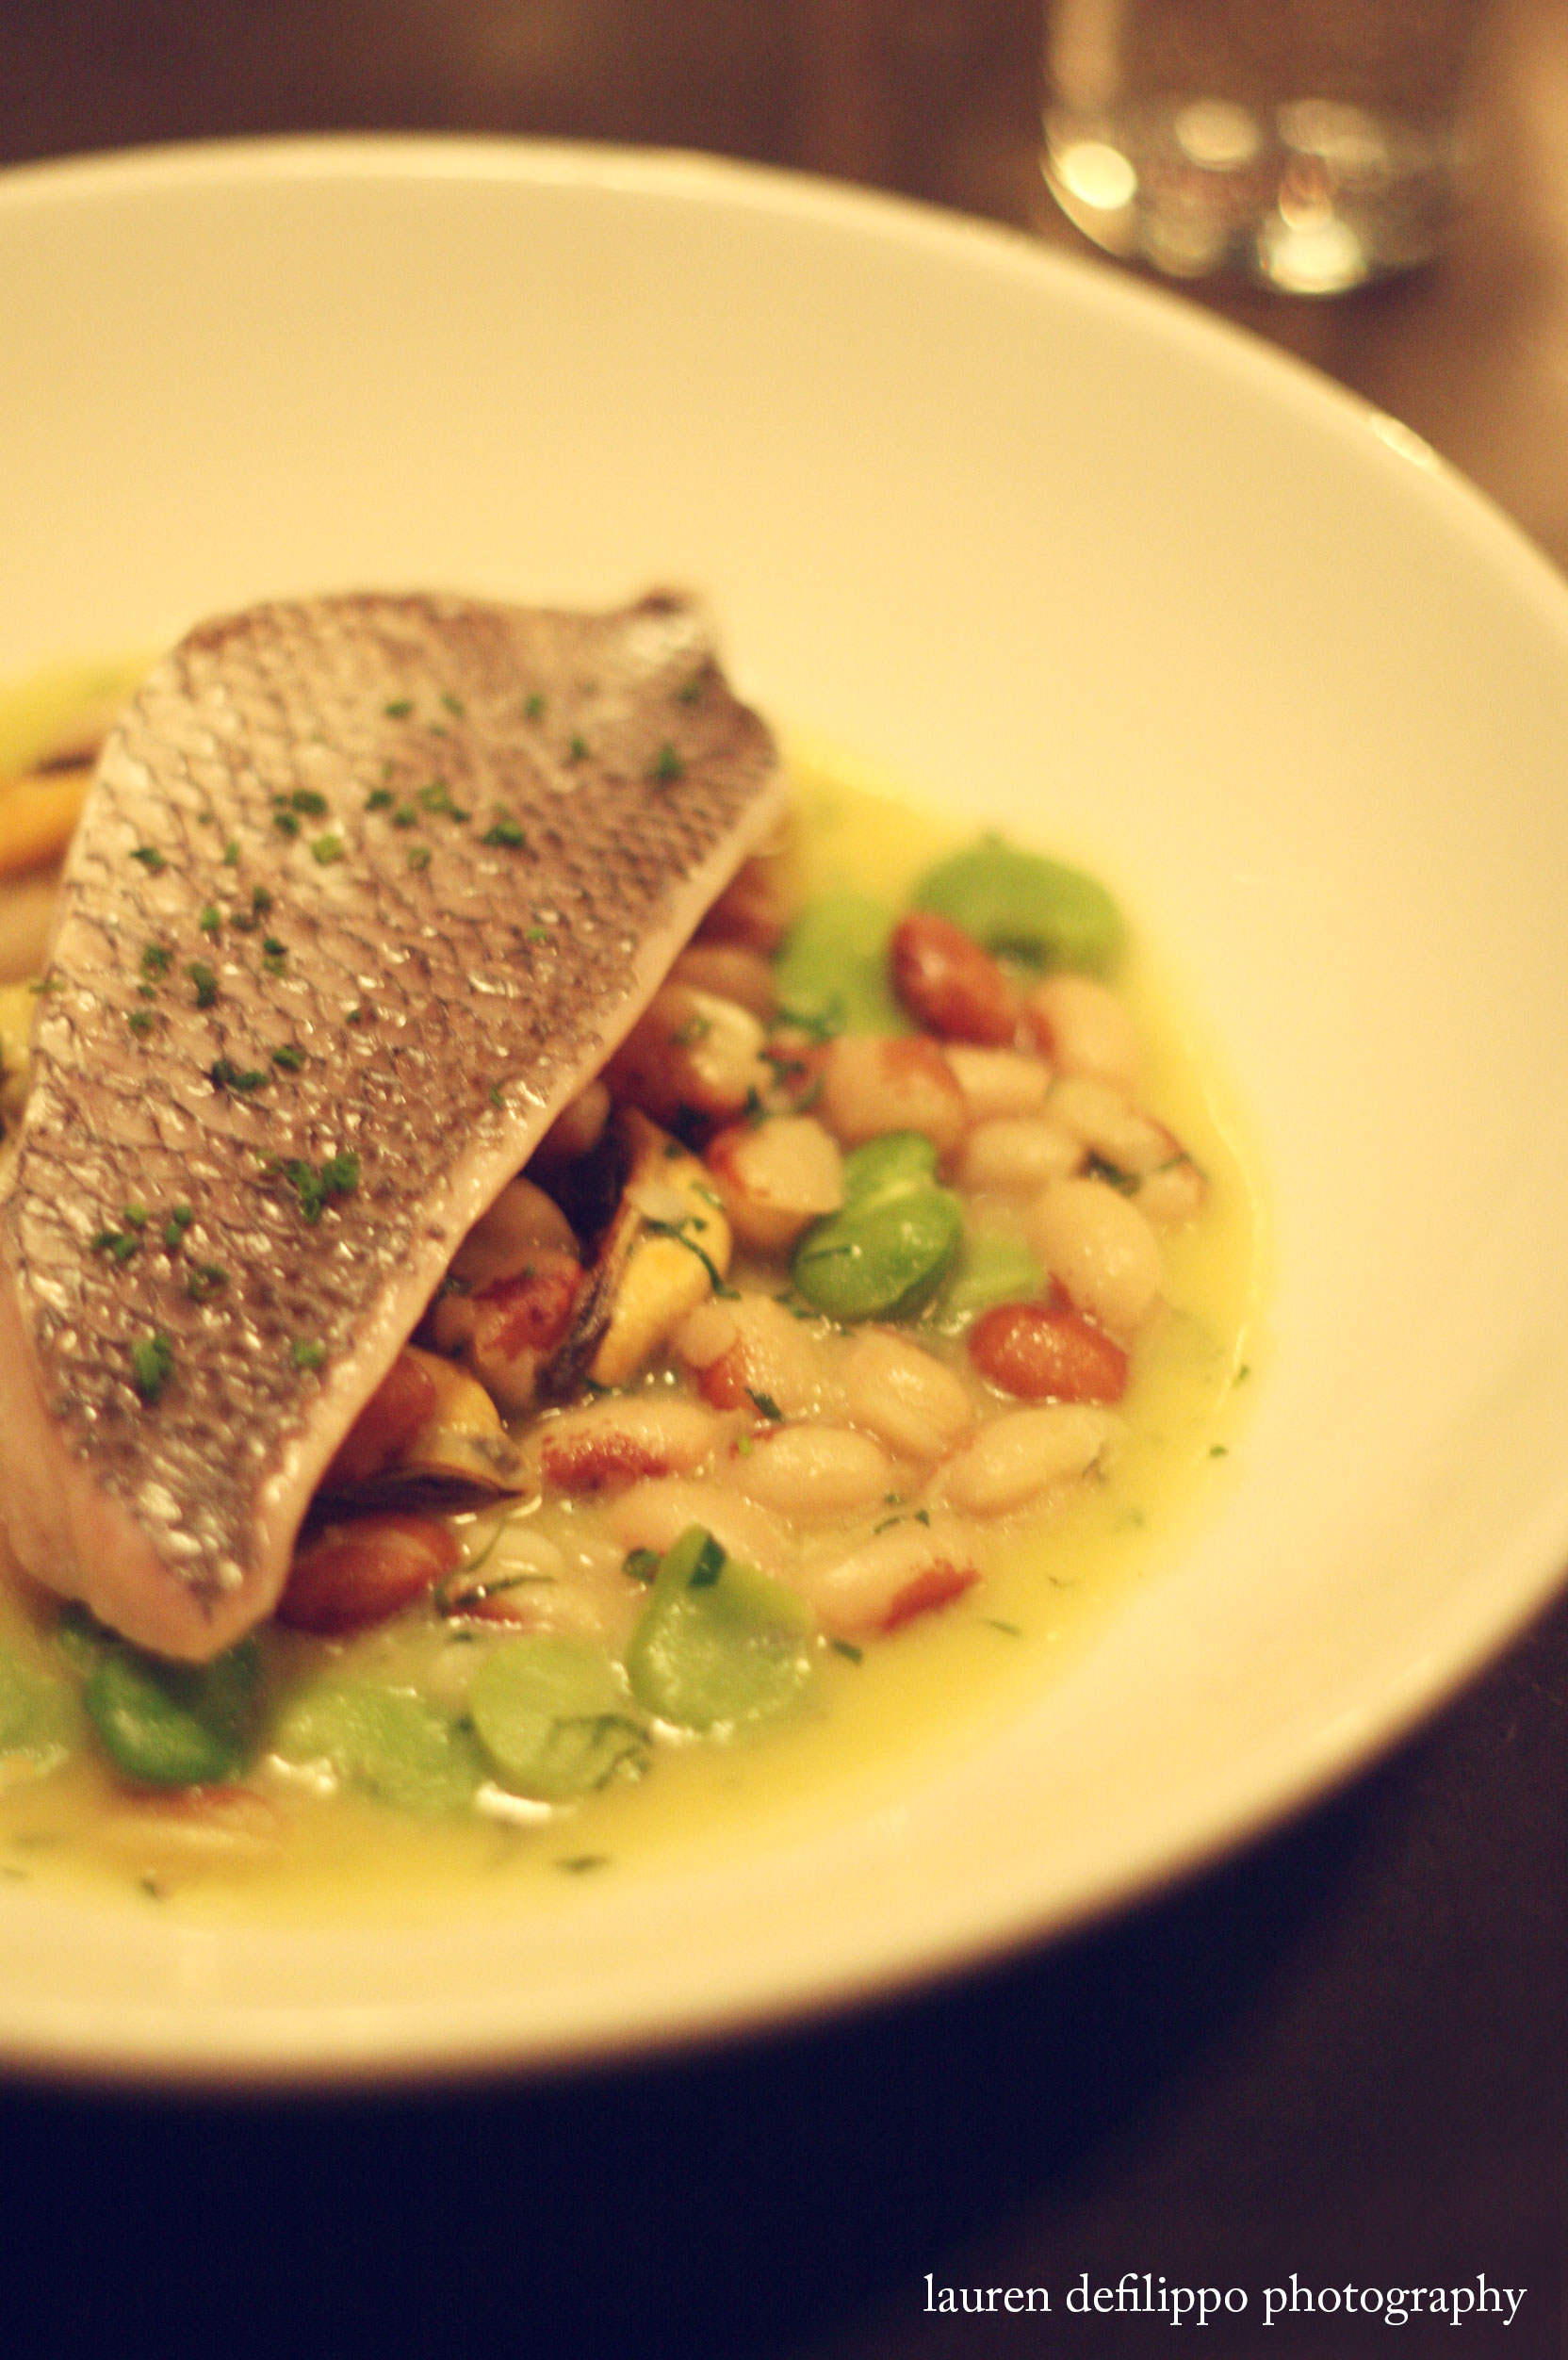 Porgy with fava and yellow eyed beans in green garlic broth